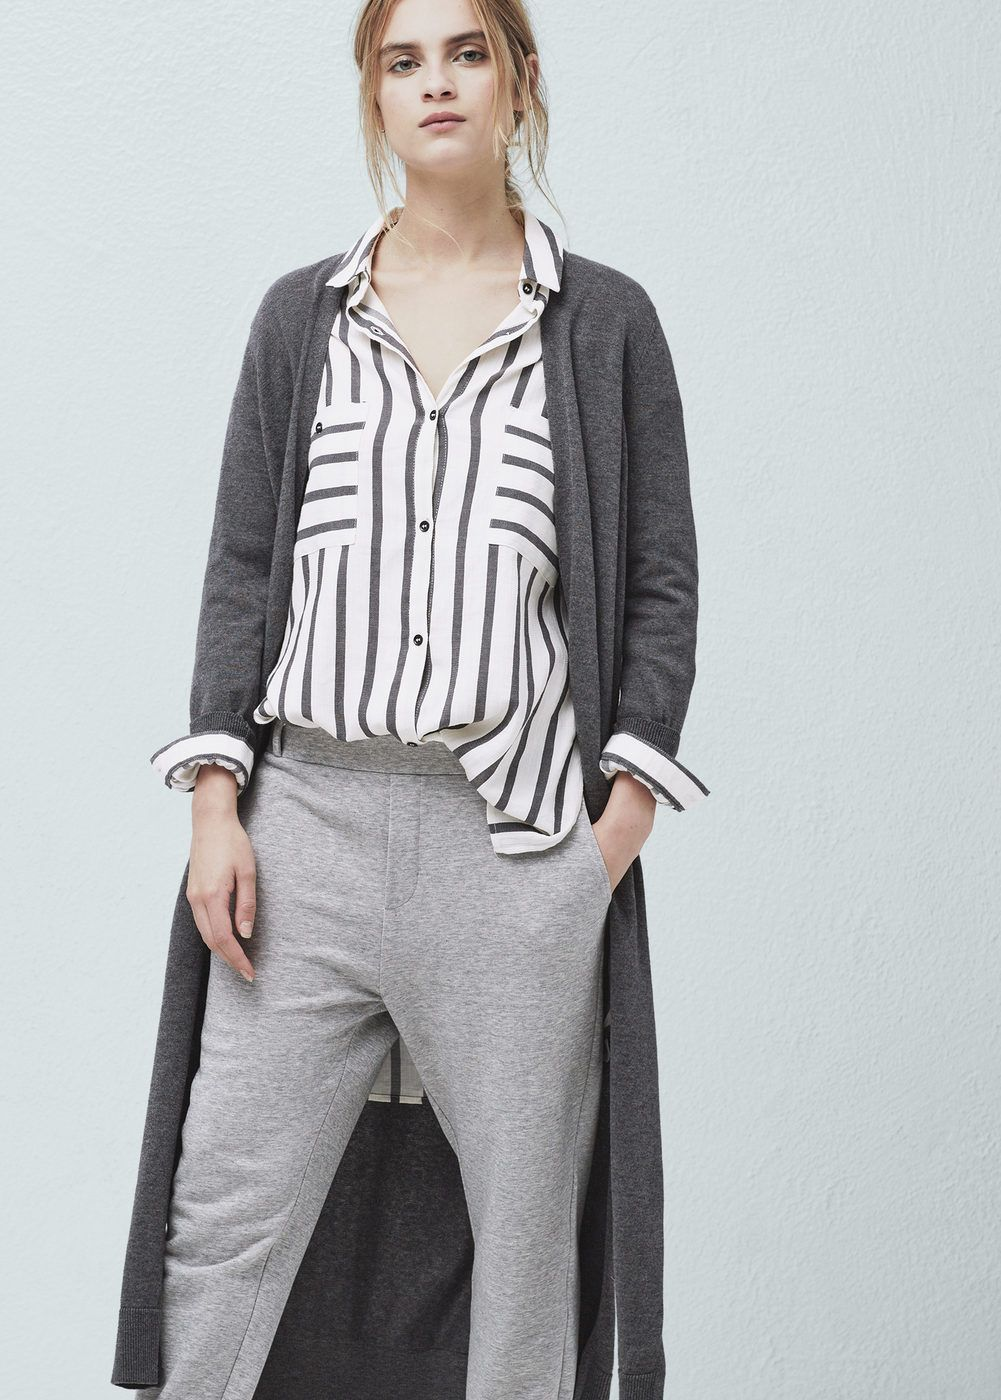 Long cotton cardigan | Cotton, Muslim fashion and White outfits